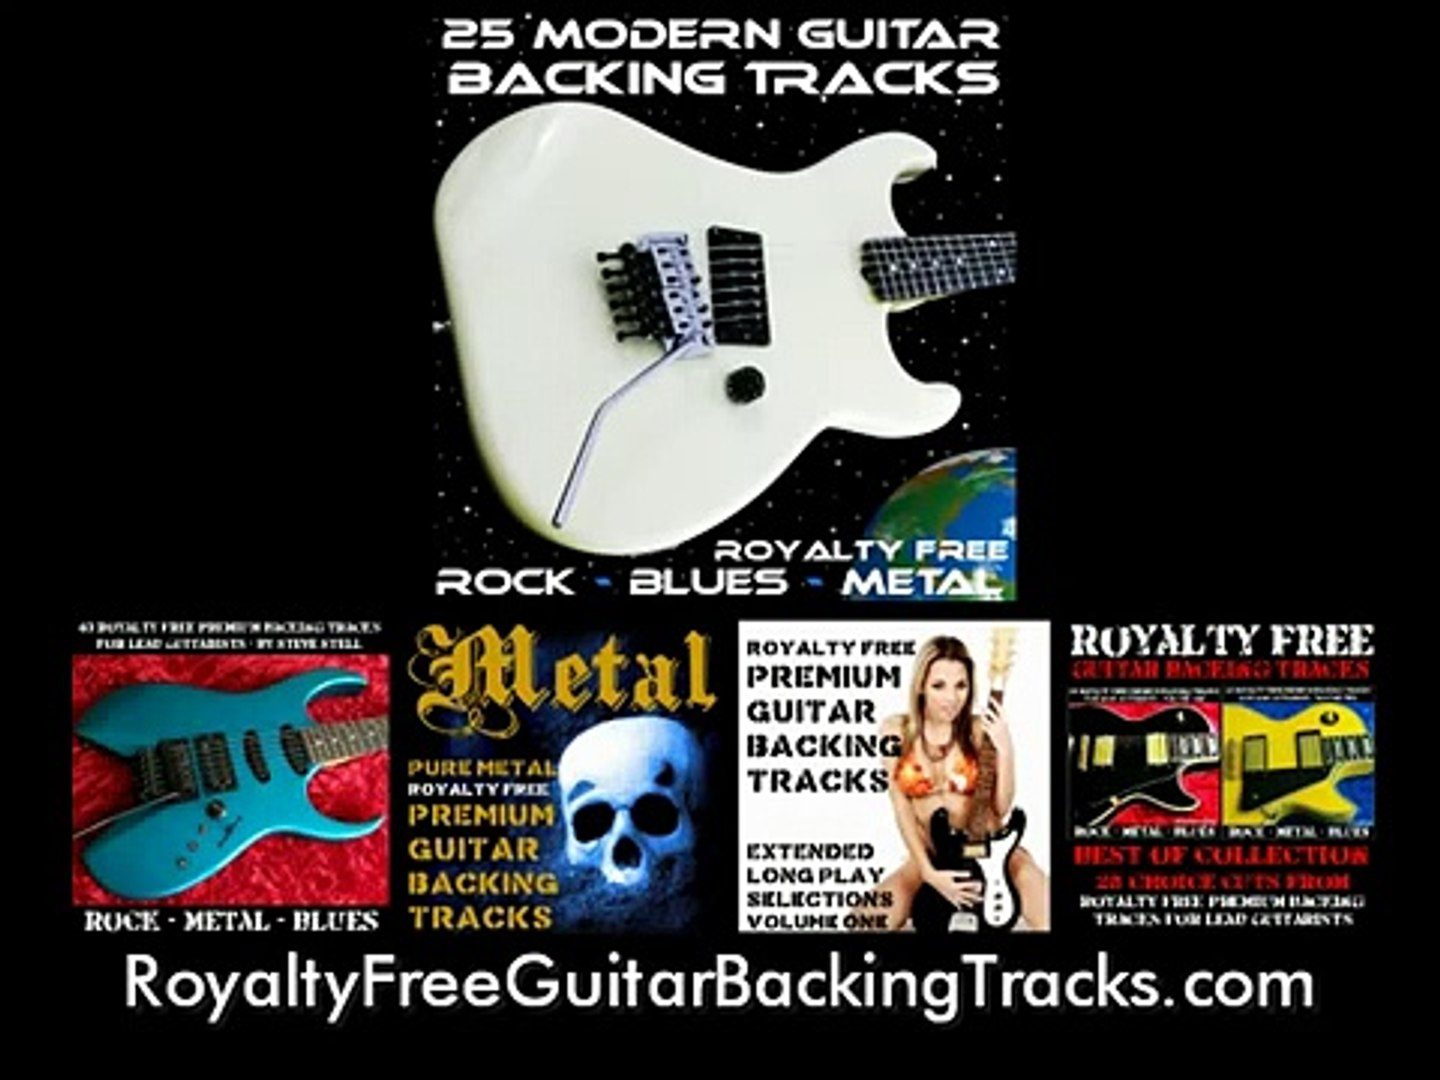 Key Of E Flat Minor Classic Rock Guitar Backing Track Jam